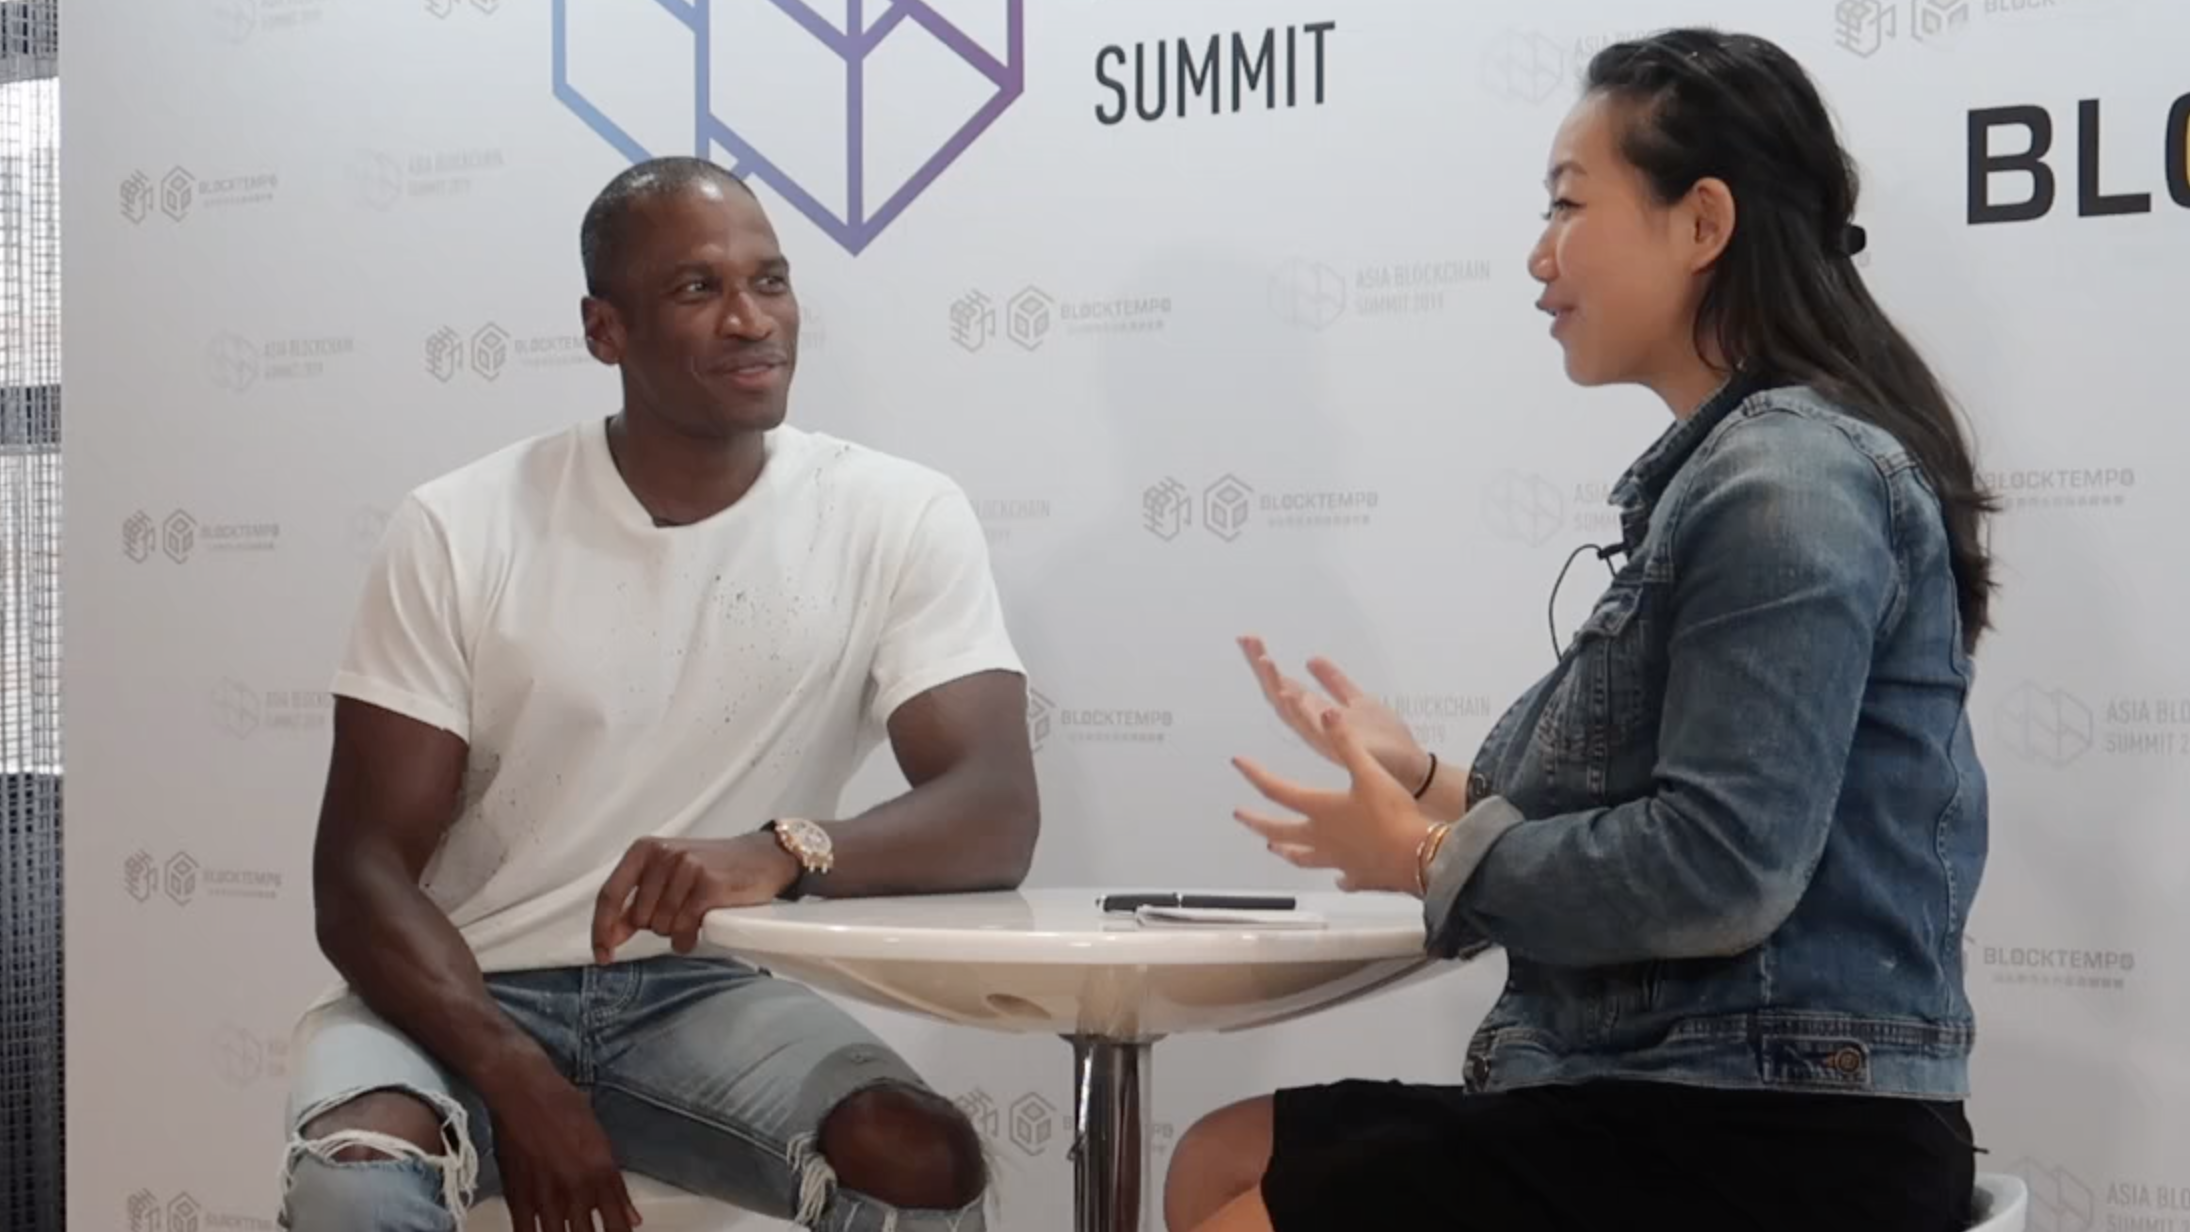 Interview Transcript with Bitmex Arthur Hayes on his debate with